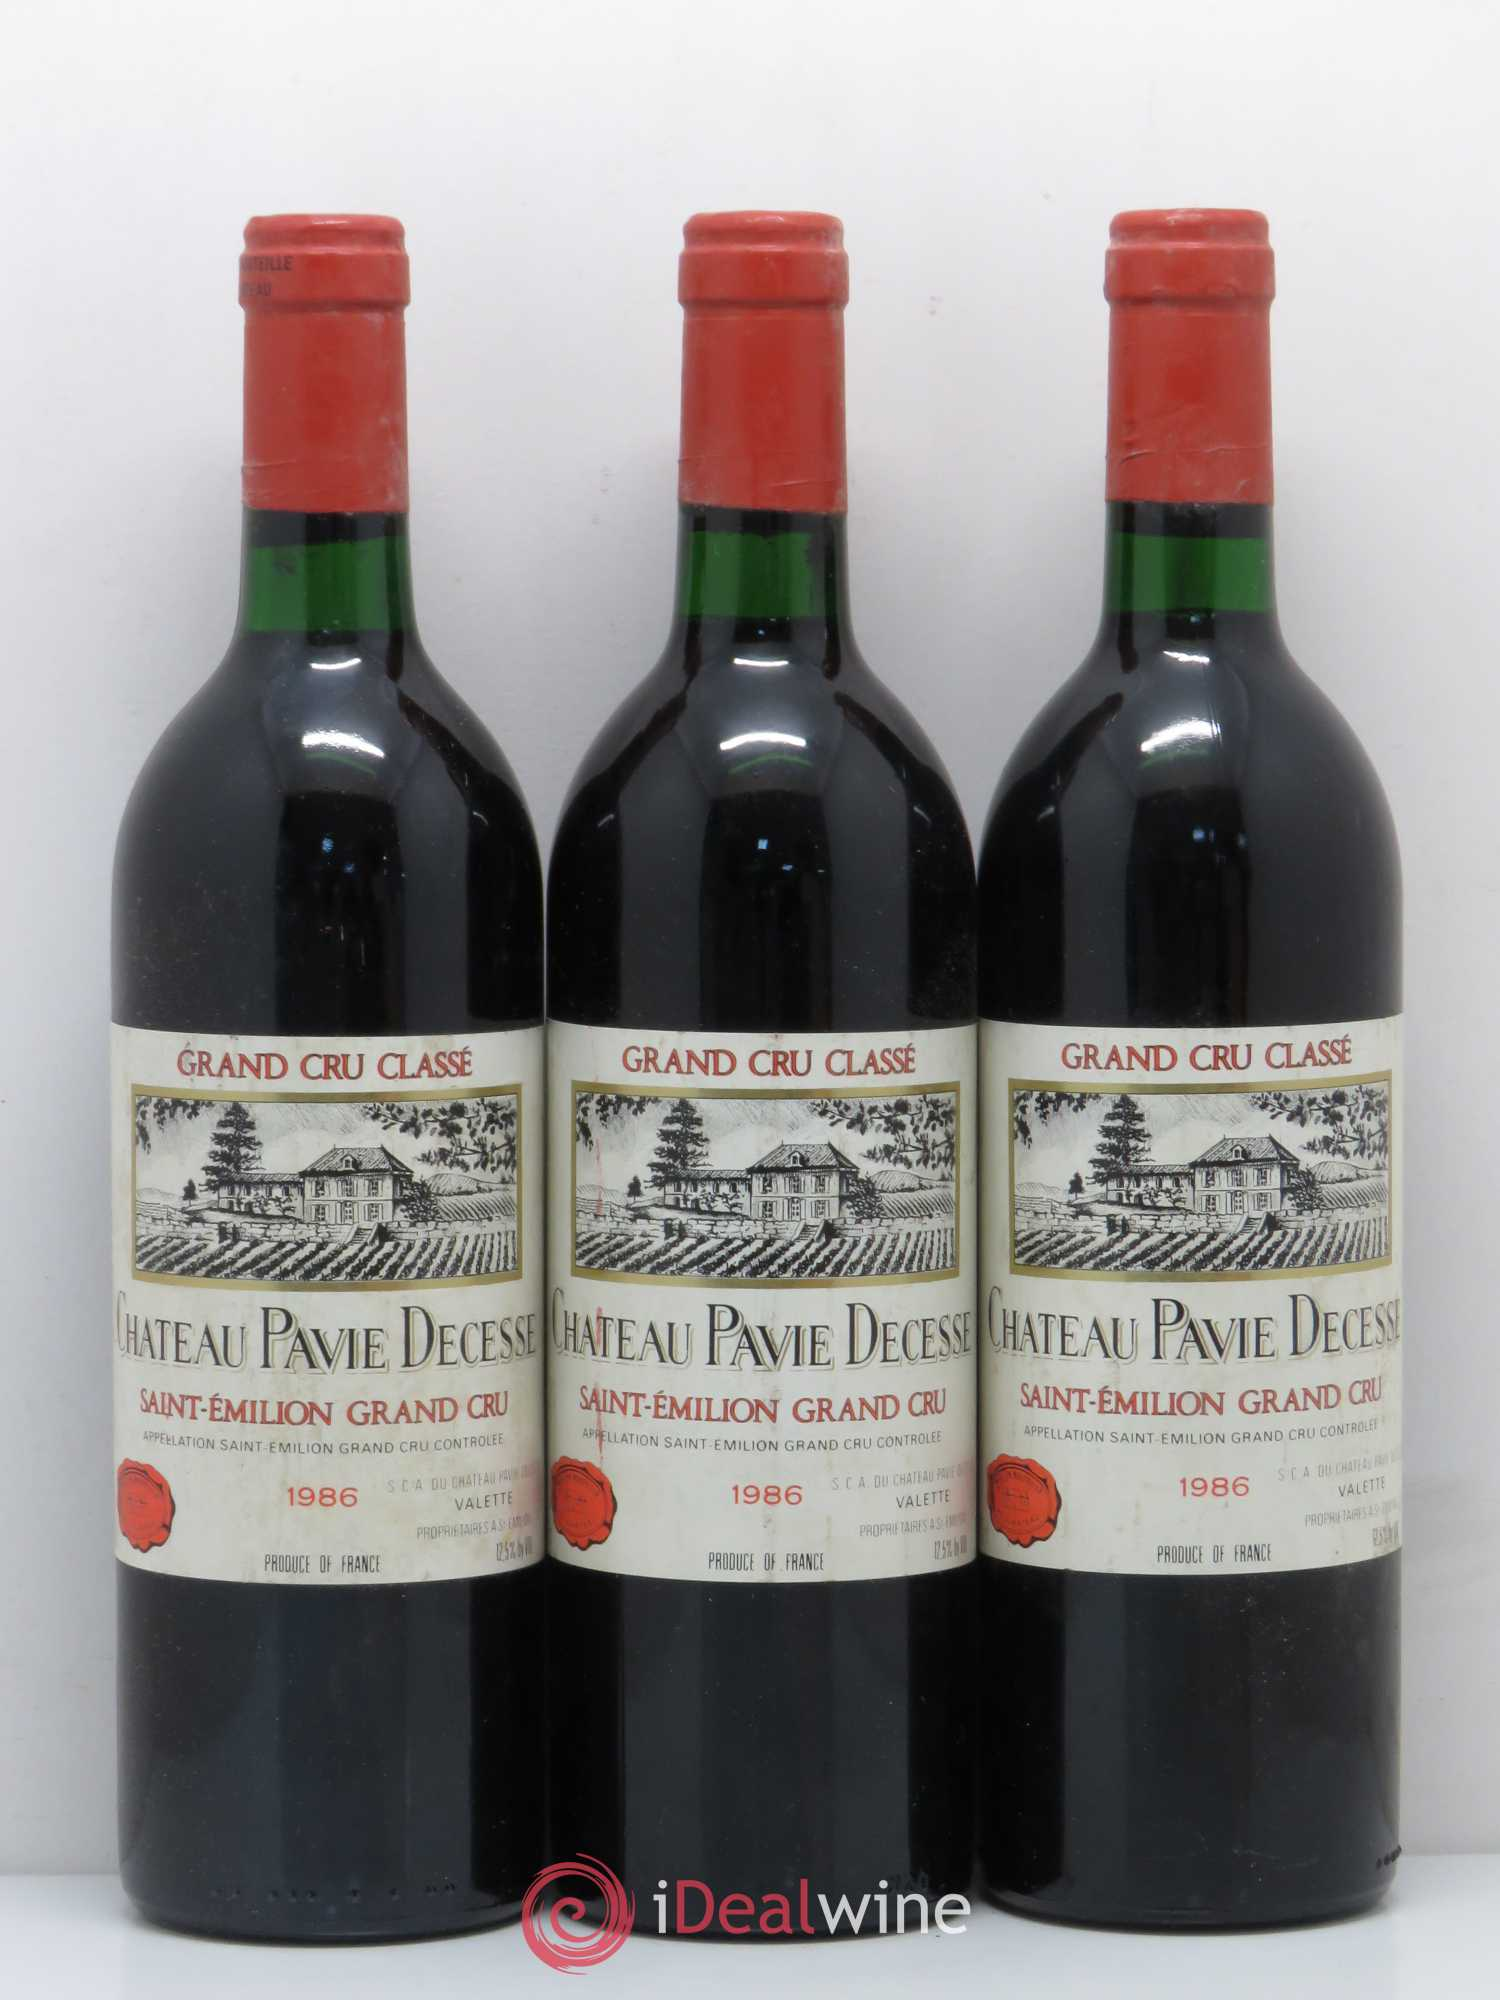 Château Pavie Decesse Grand Cru Classé  1986 - Lot of 3 Bottles